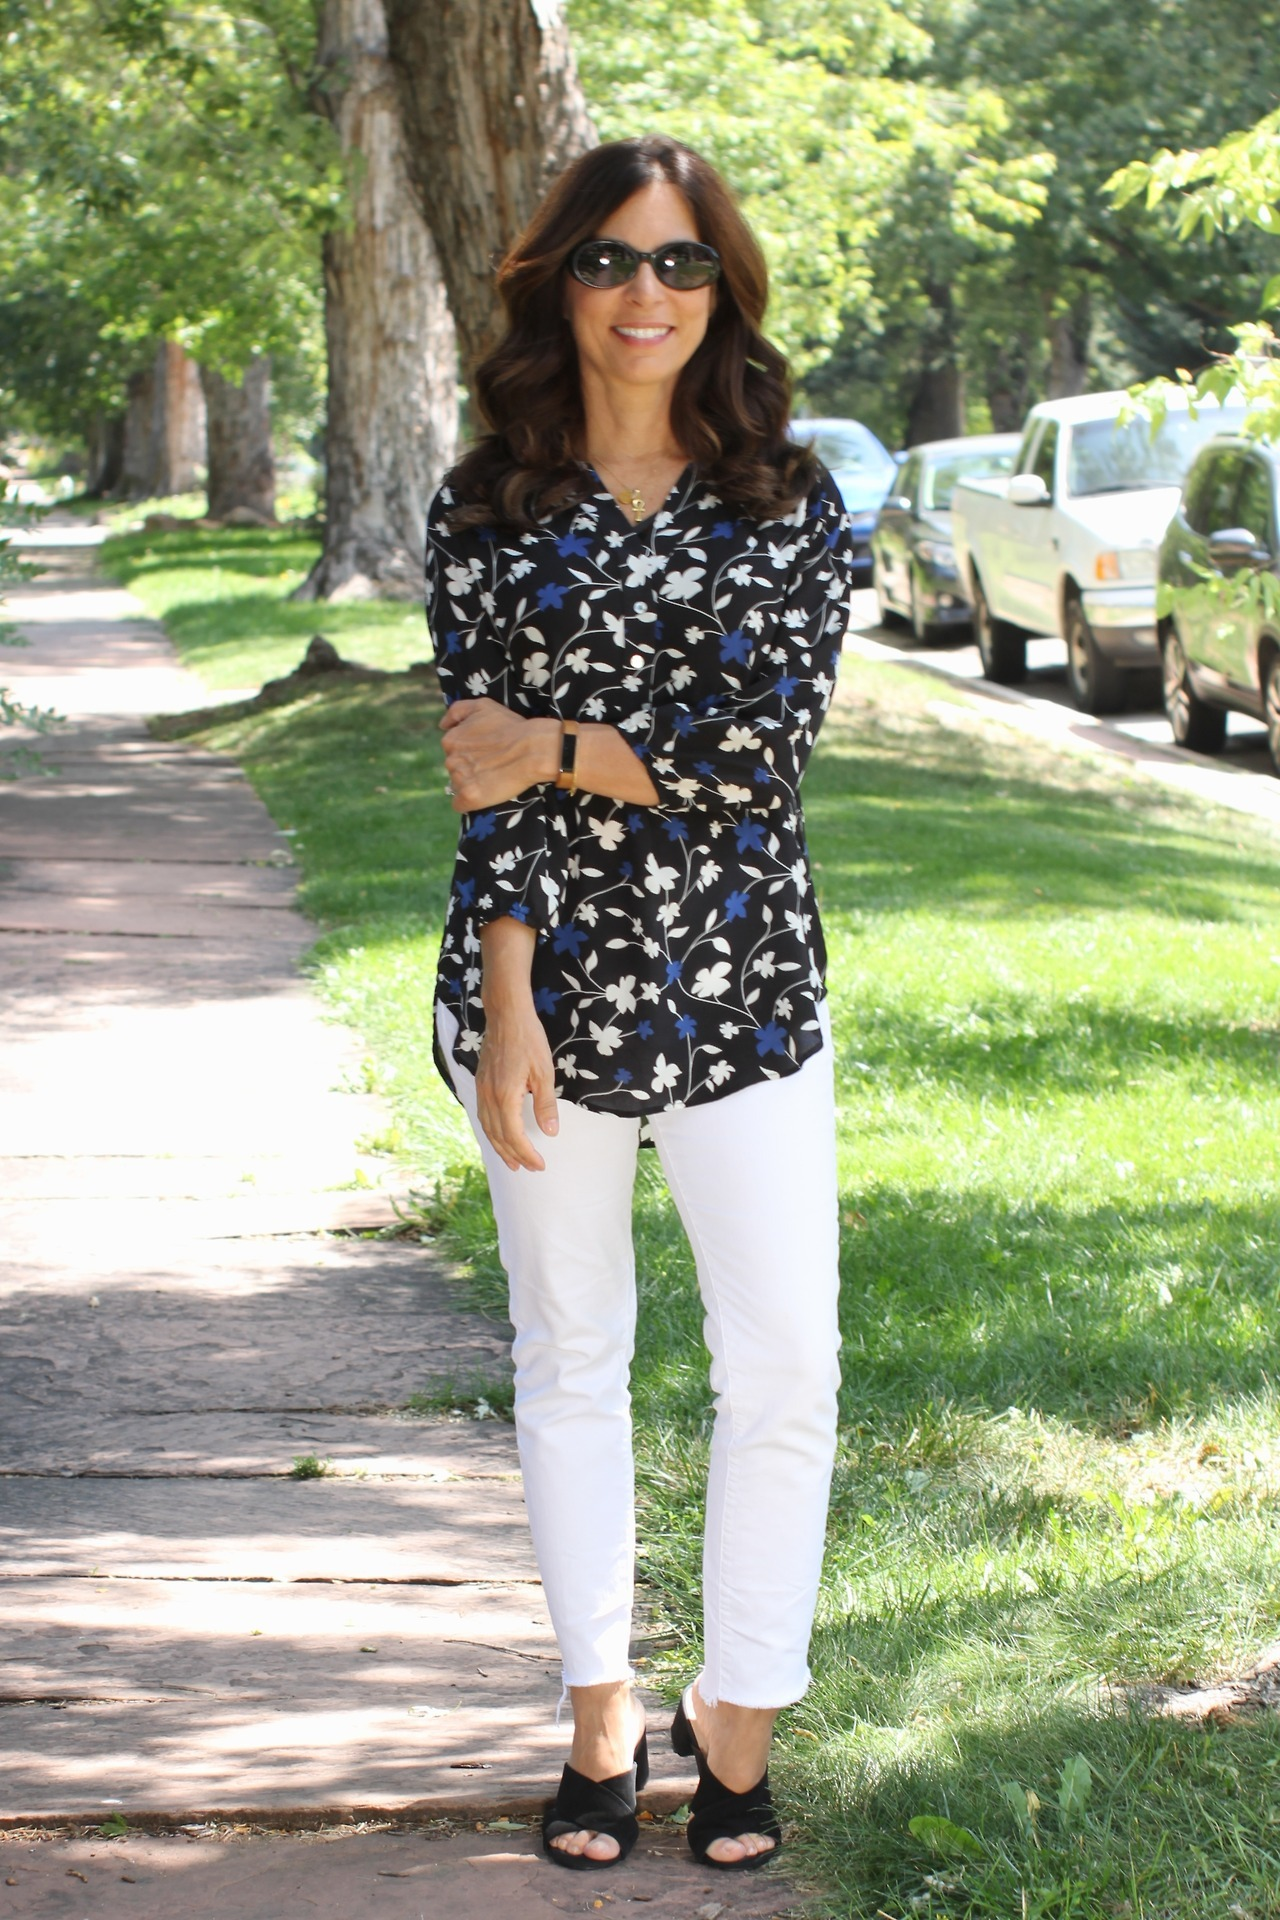 c46c07c77048 Ana from Mrs. American Made keeps cool by wearing a dark floral top with  her white jeans and sandals. I have been reading Mrs. American Made for a  while and ...